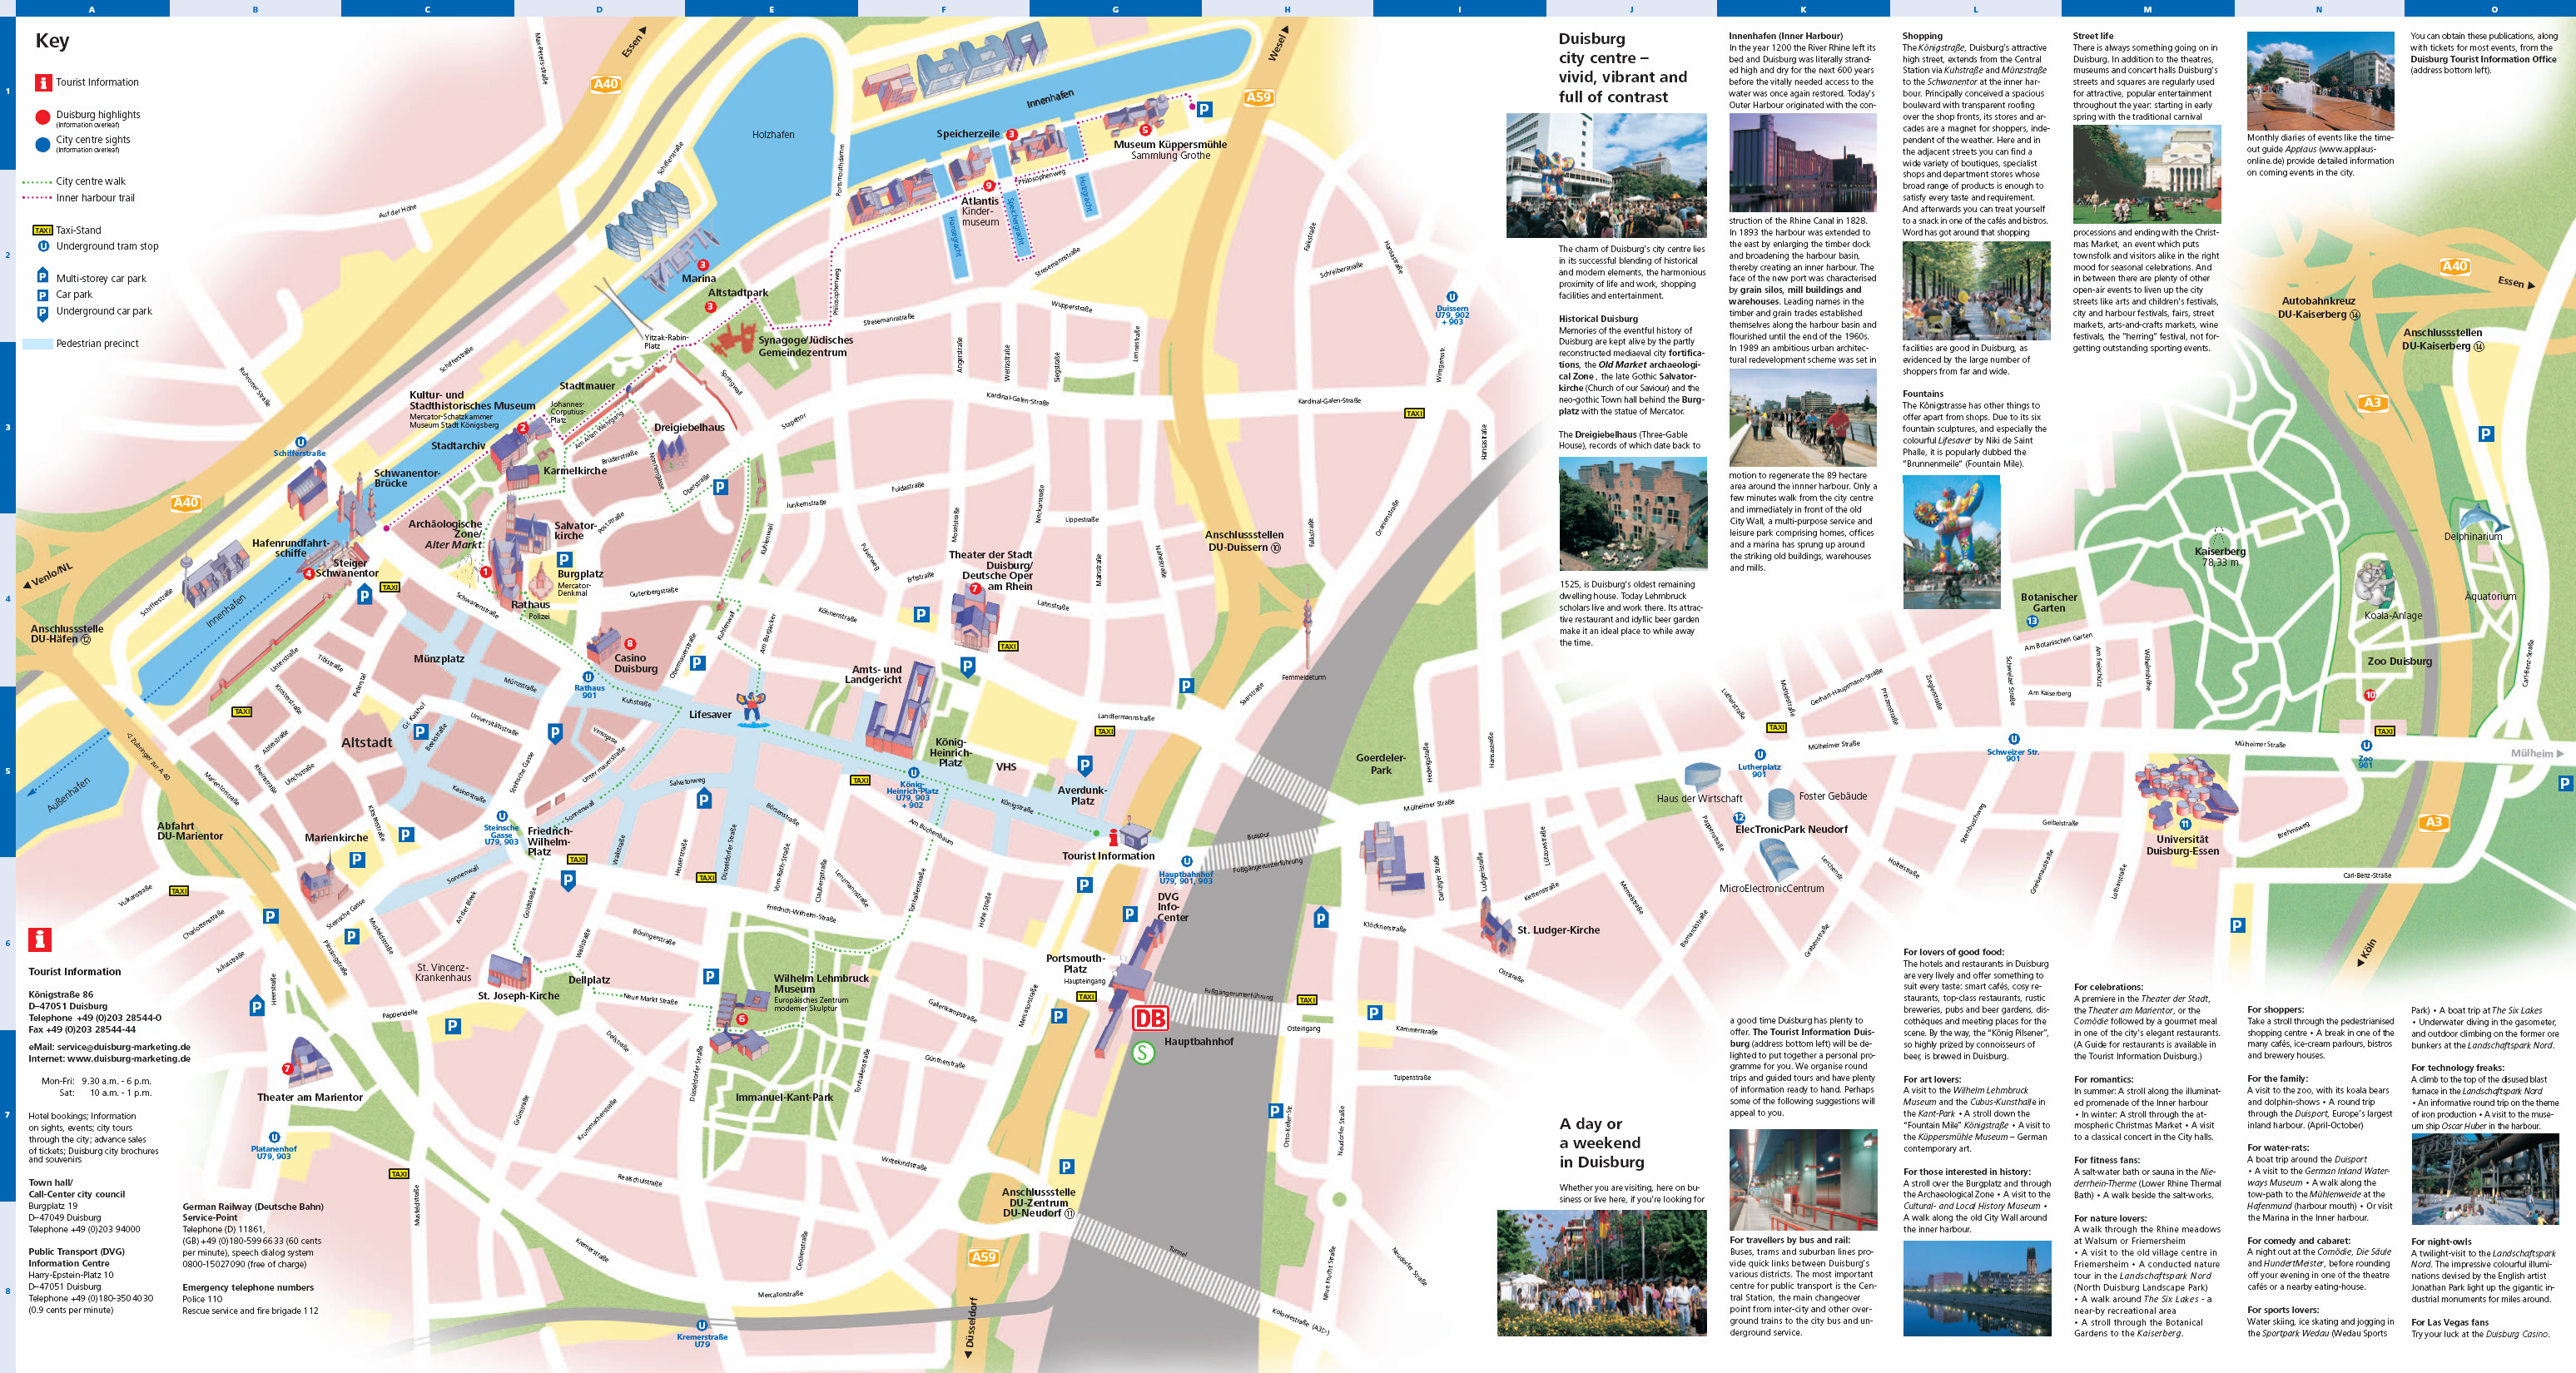 Duisburg Tourist Map Duisburg Germany mappery